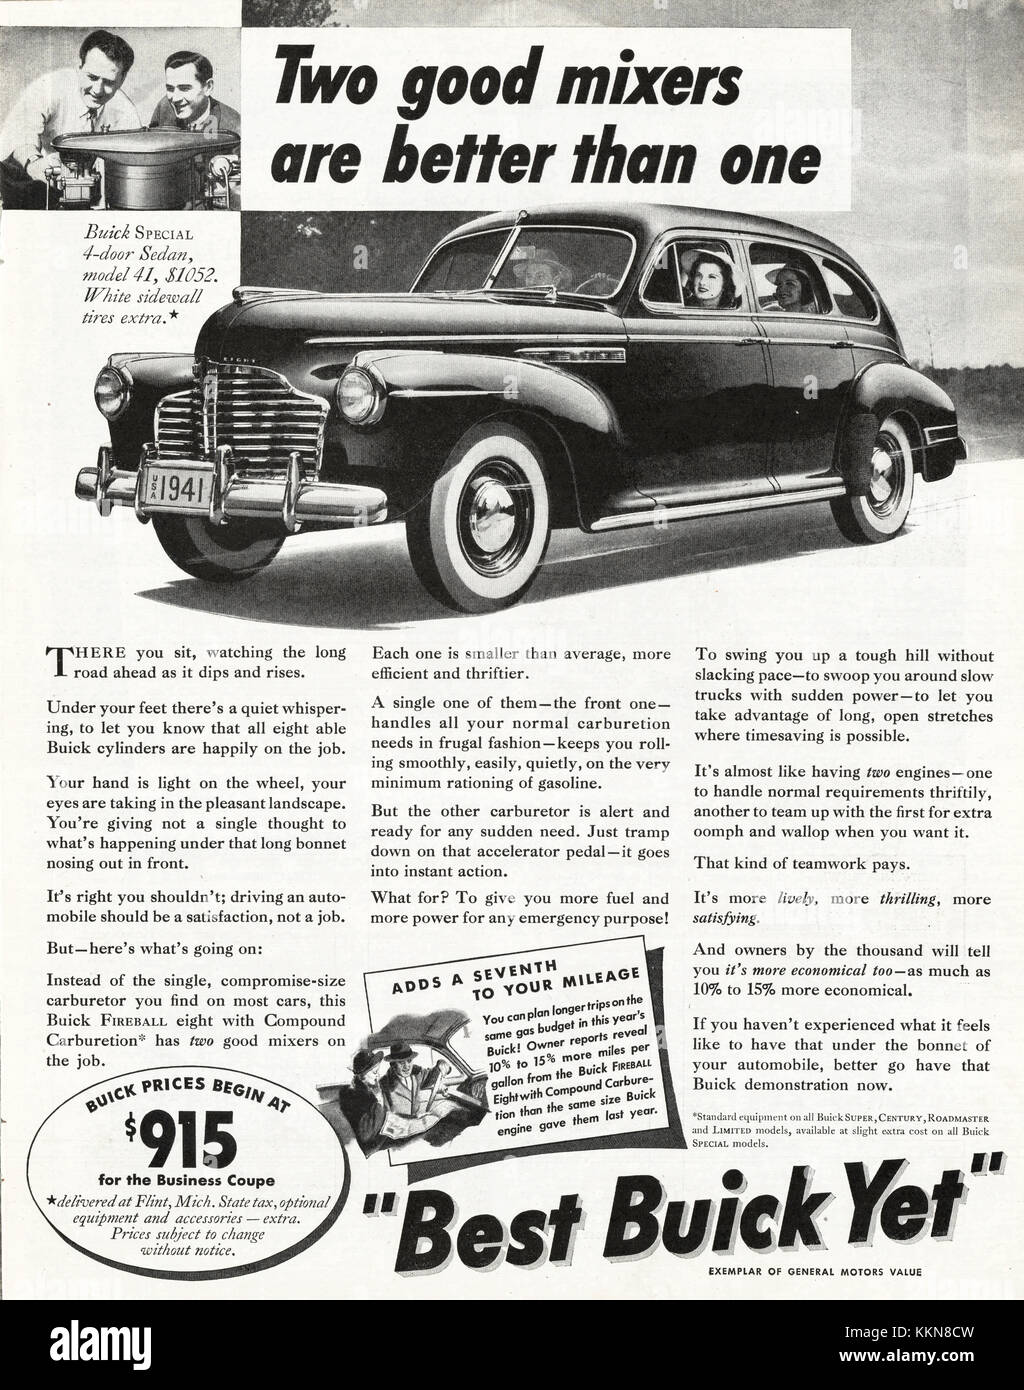 1941 U.S. Magazine Buick Car Advert Stock Photo: 167039401 - Alamy